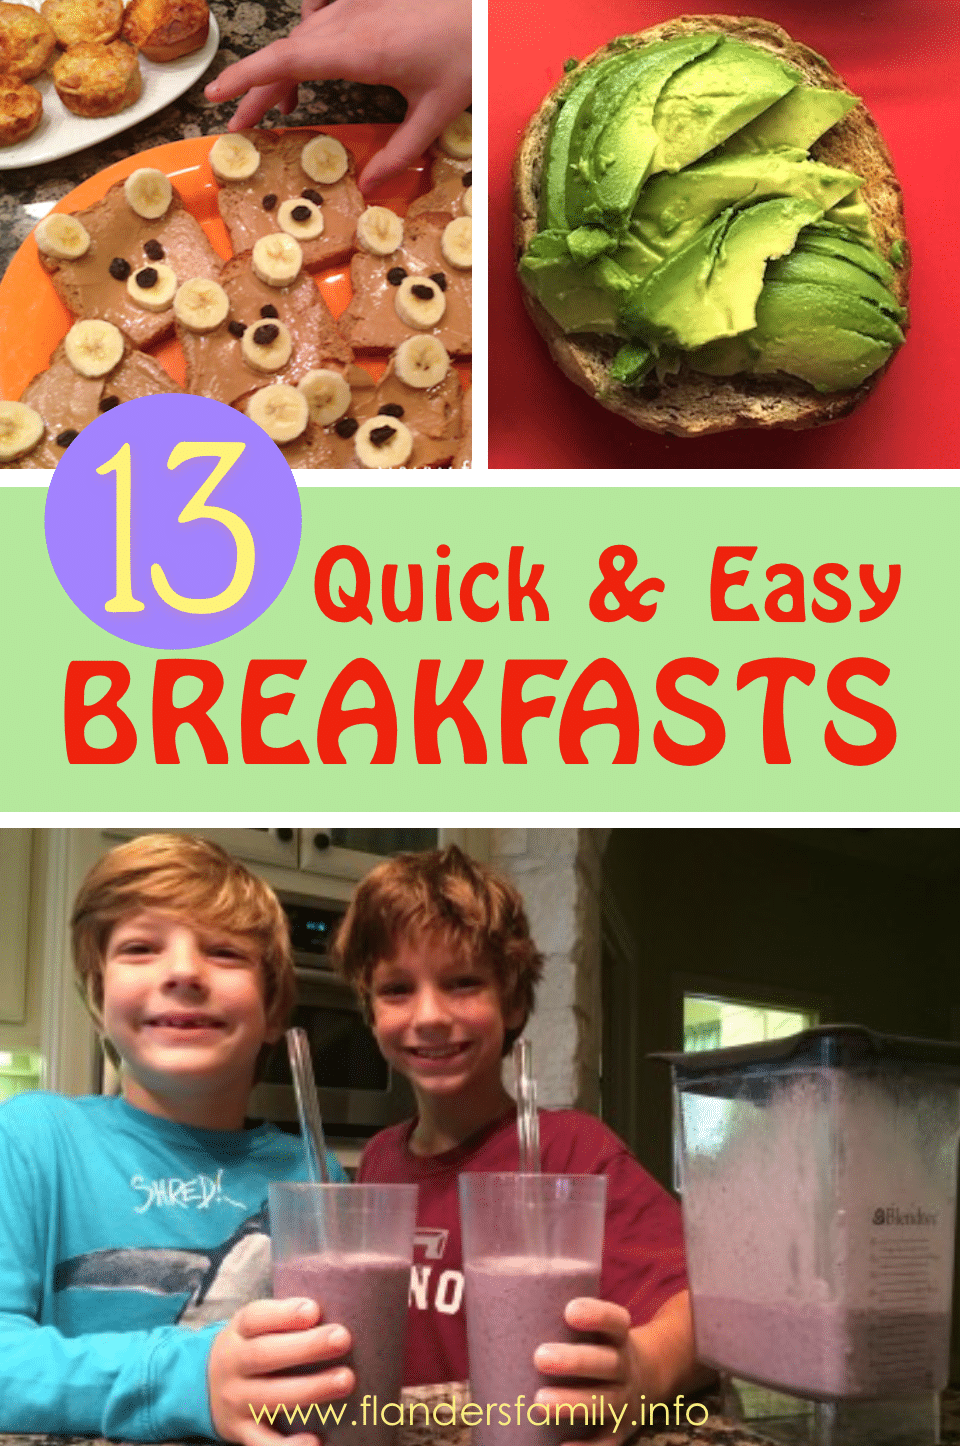 13 Quick and Easy Breakfast Ideas